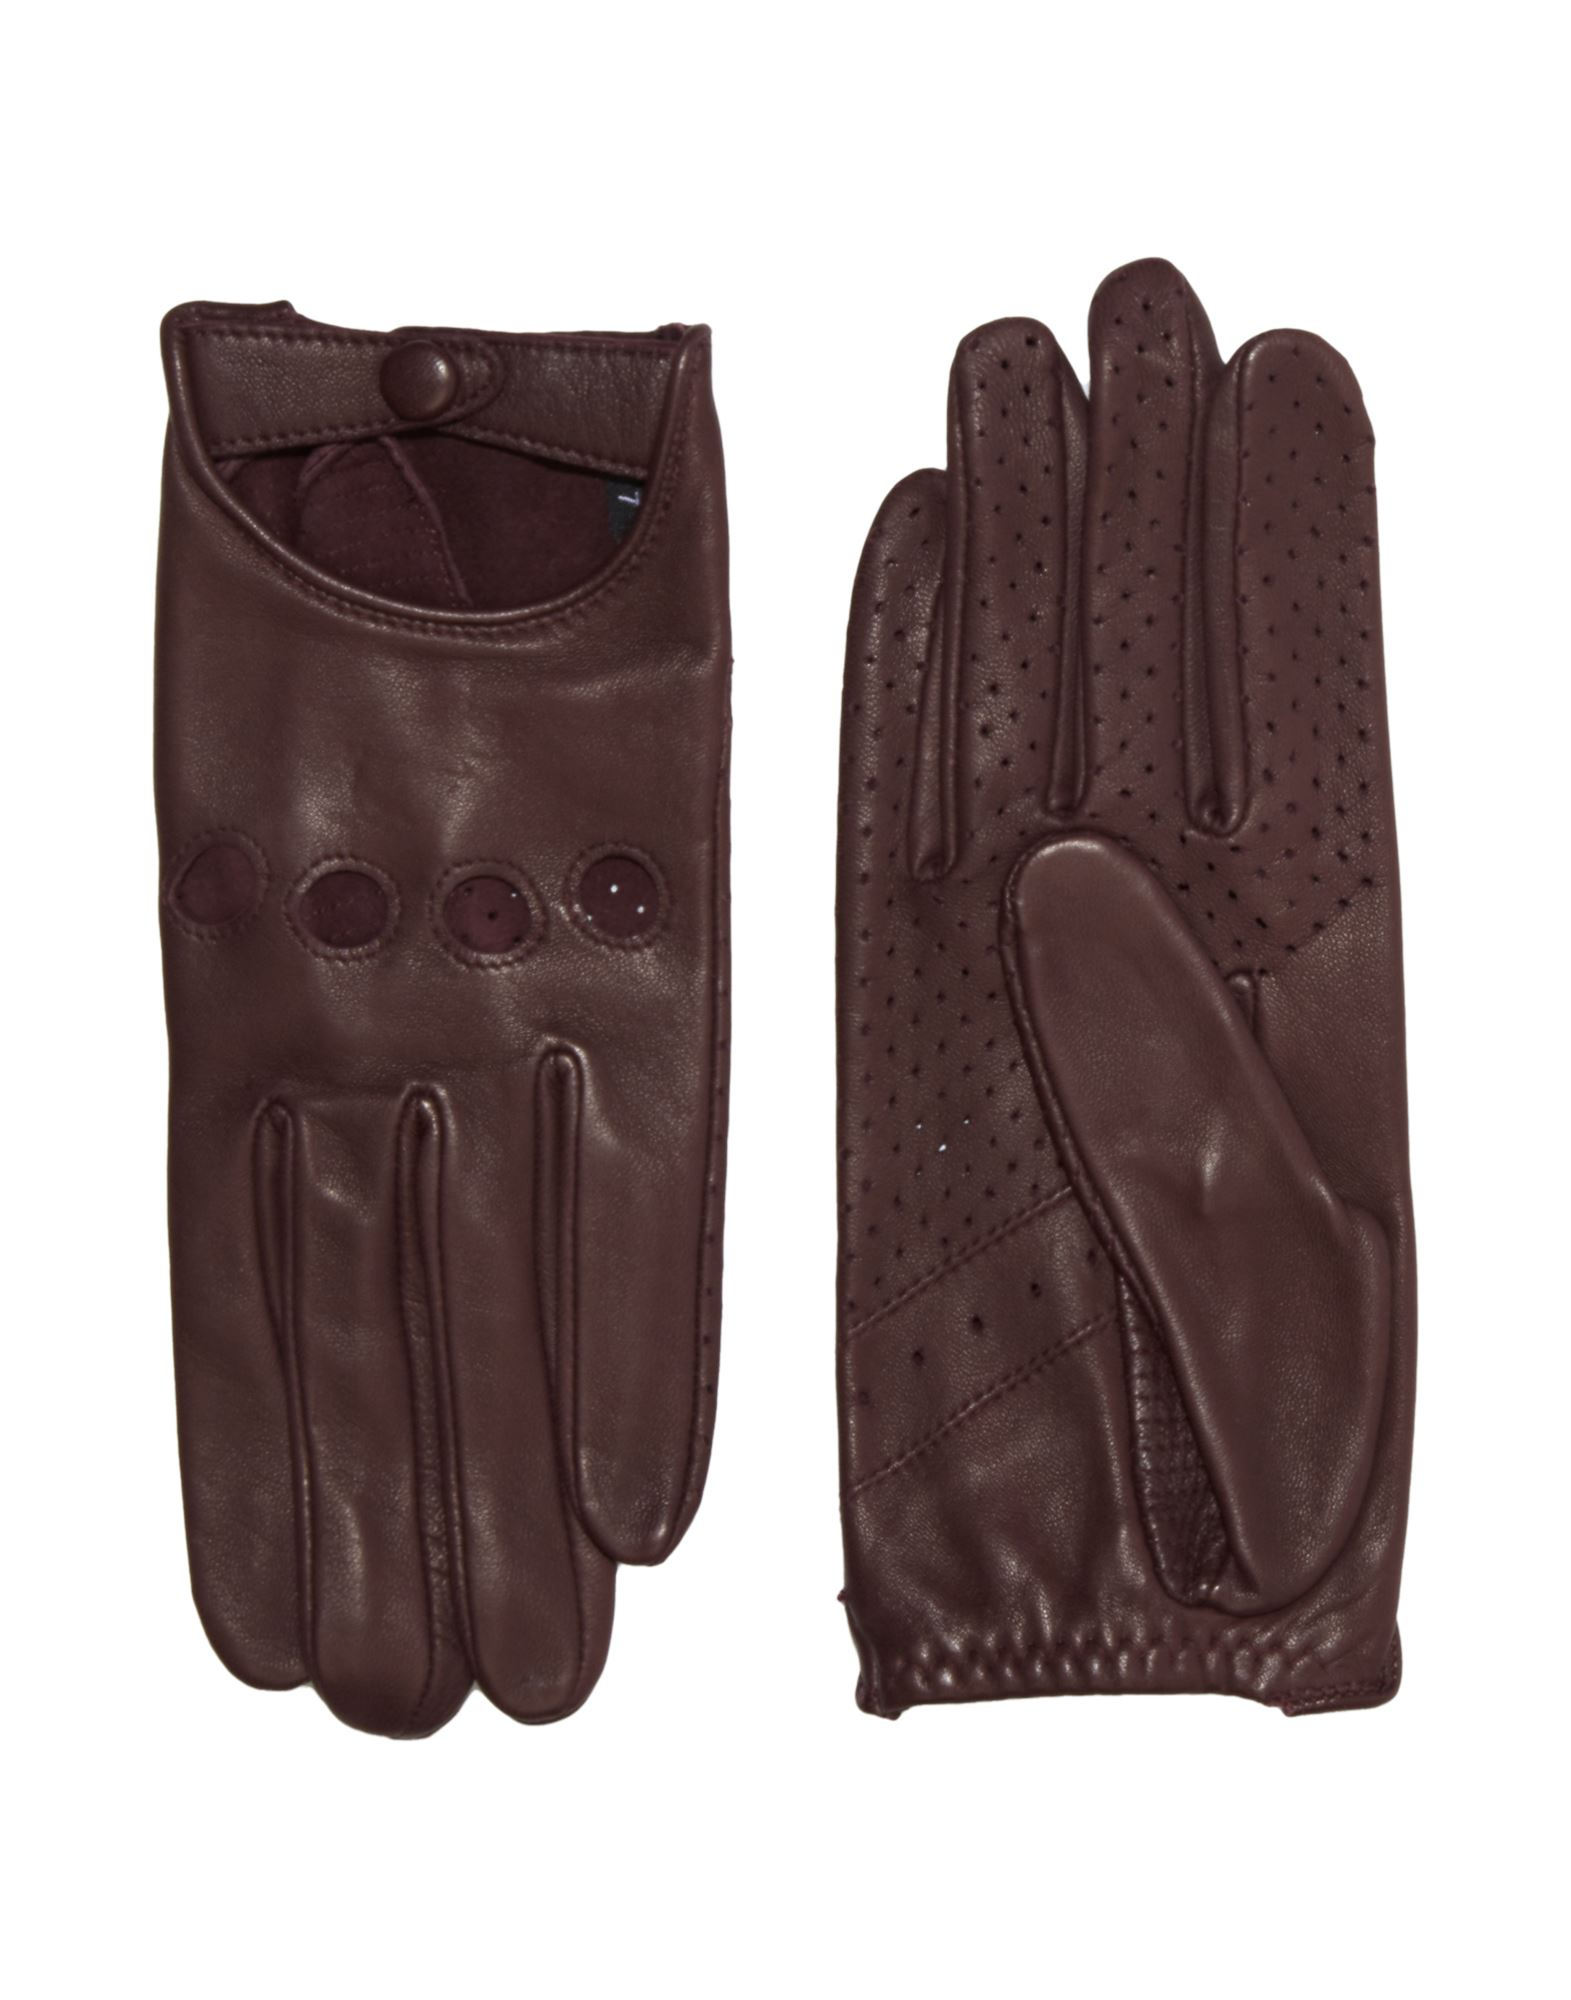 ISABEL MARANT Gloves. no appliqués, basic solid color, contains non-textile parts of animal origin. Lambskin